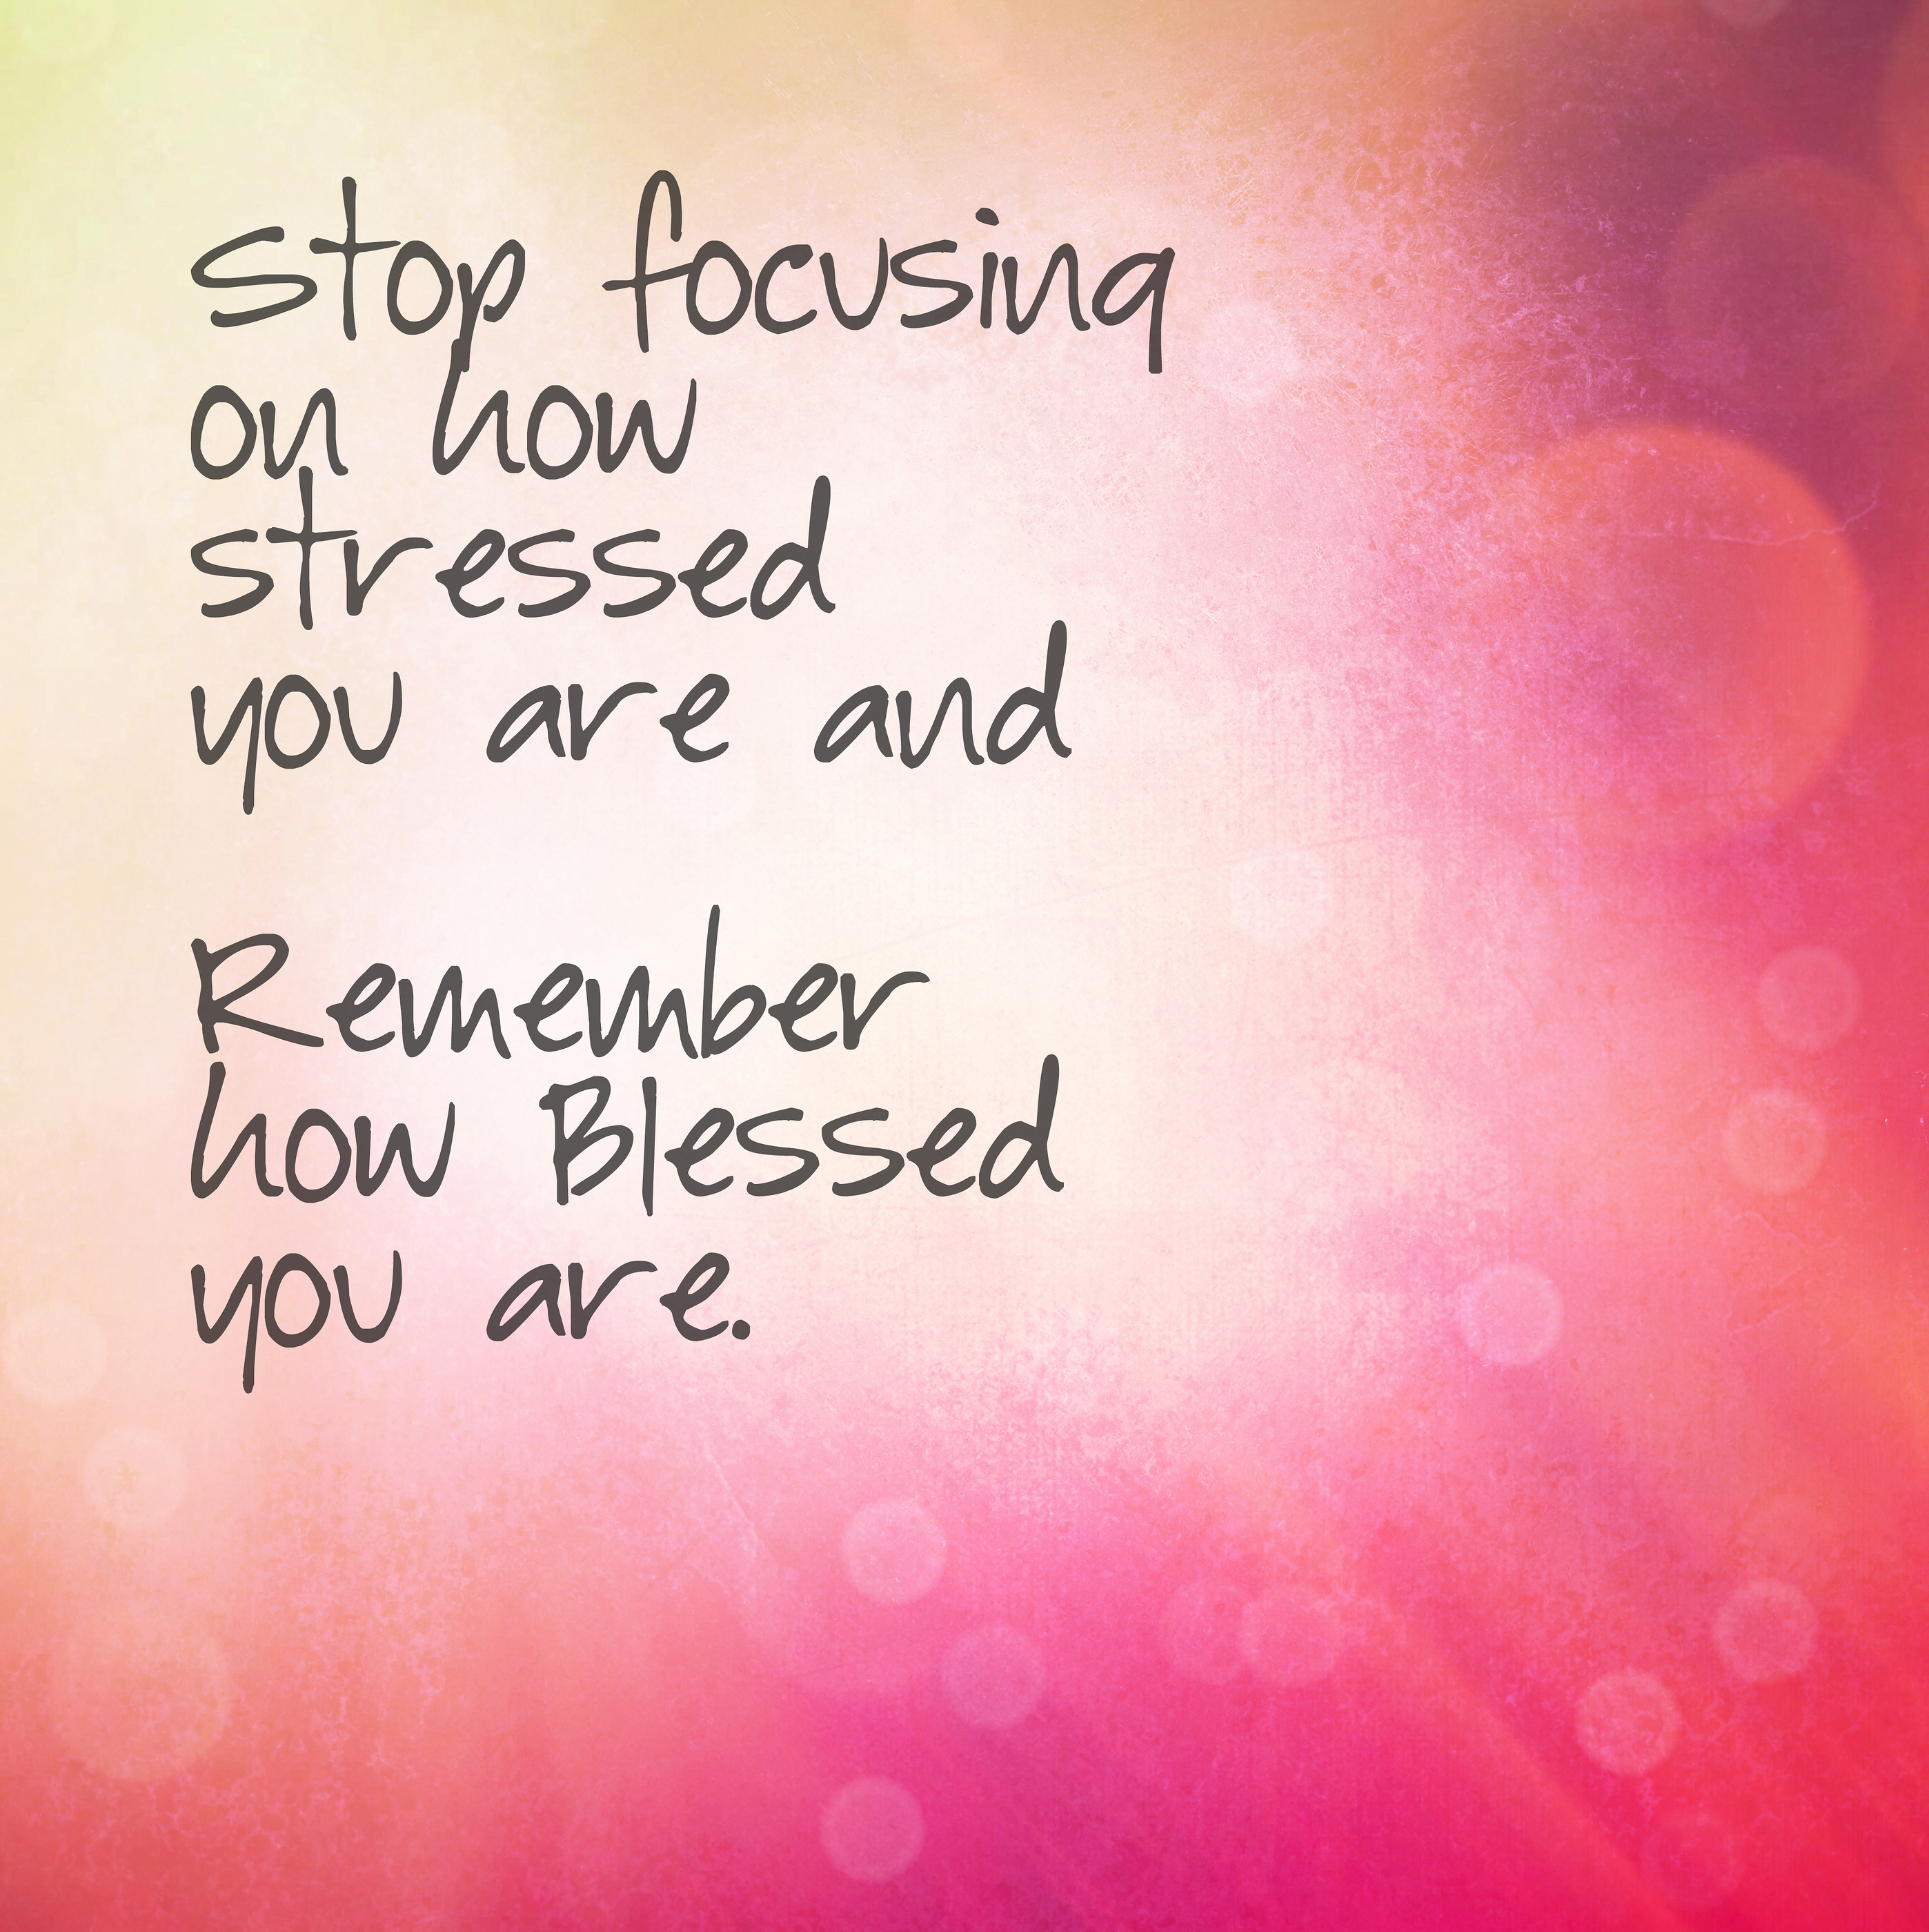 You Are A Blessing Bless Your Being Remembrance Make